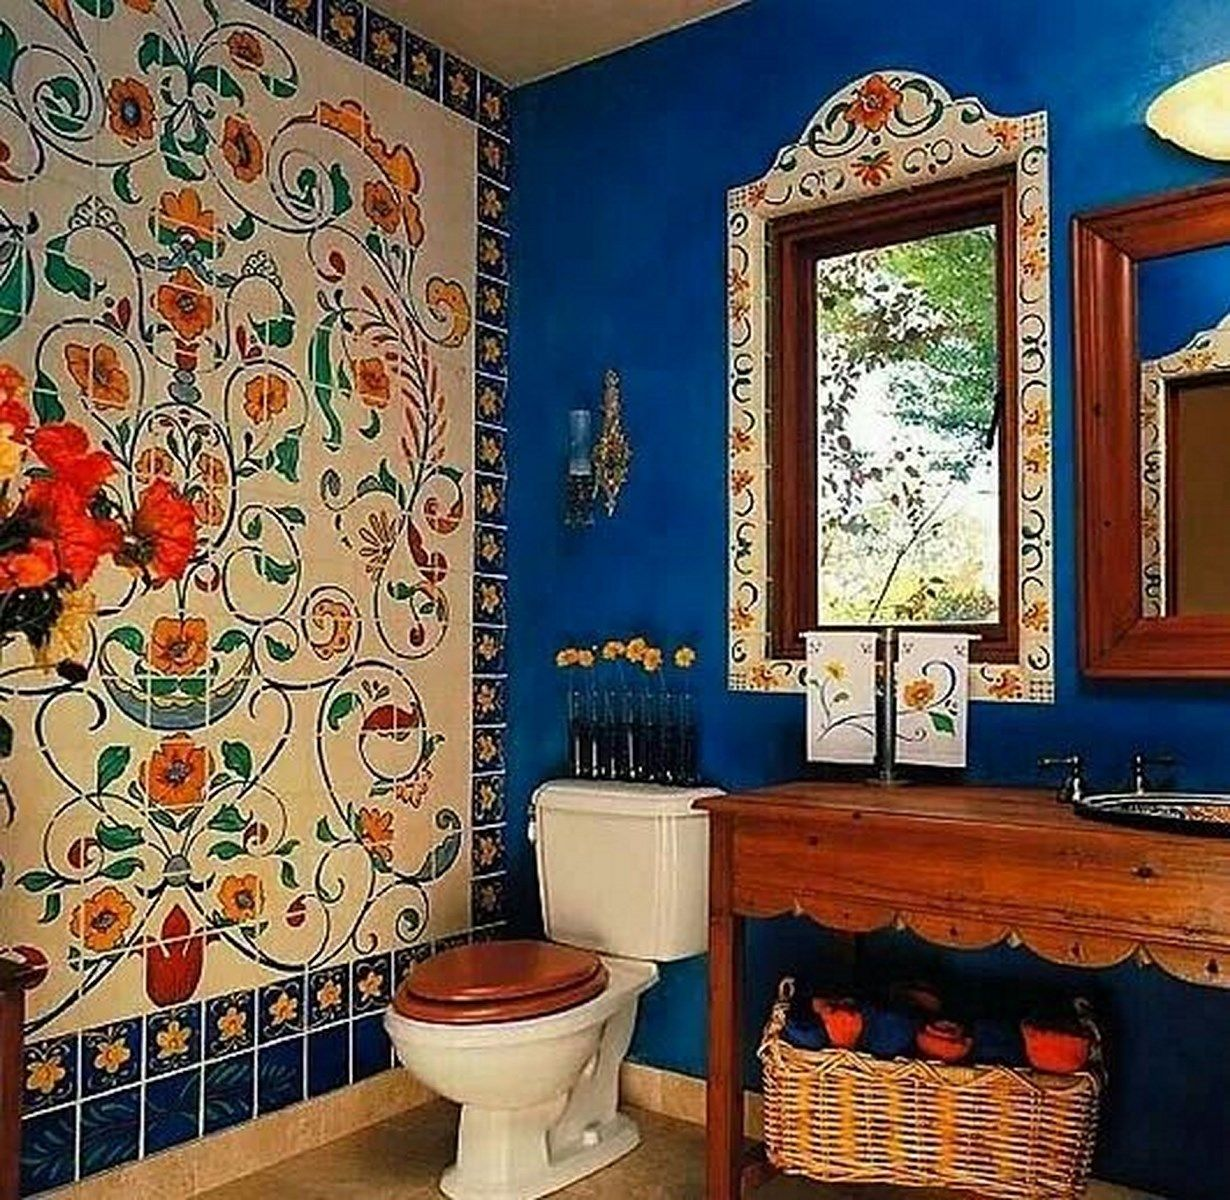 Quirky Kitchen Decor: Quirky Bohemian Bathroom